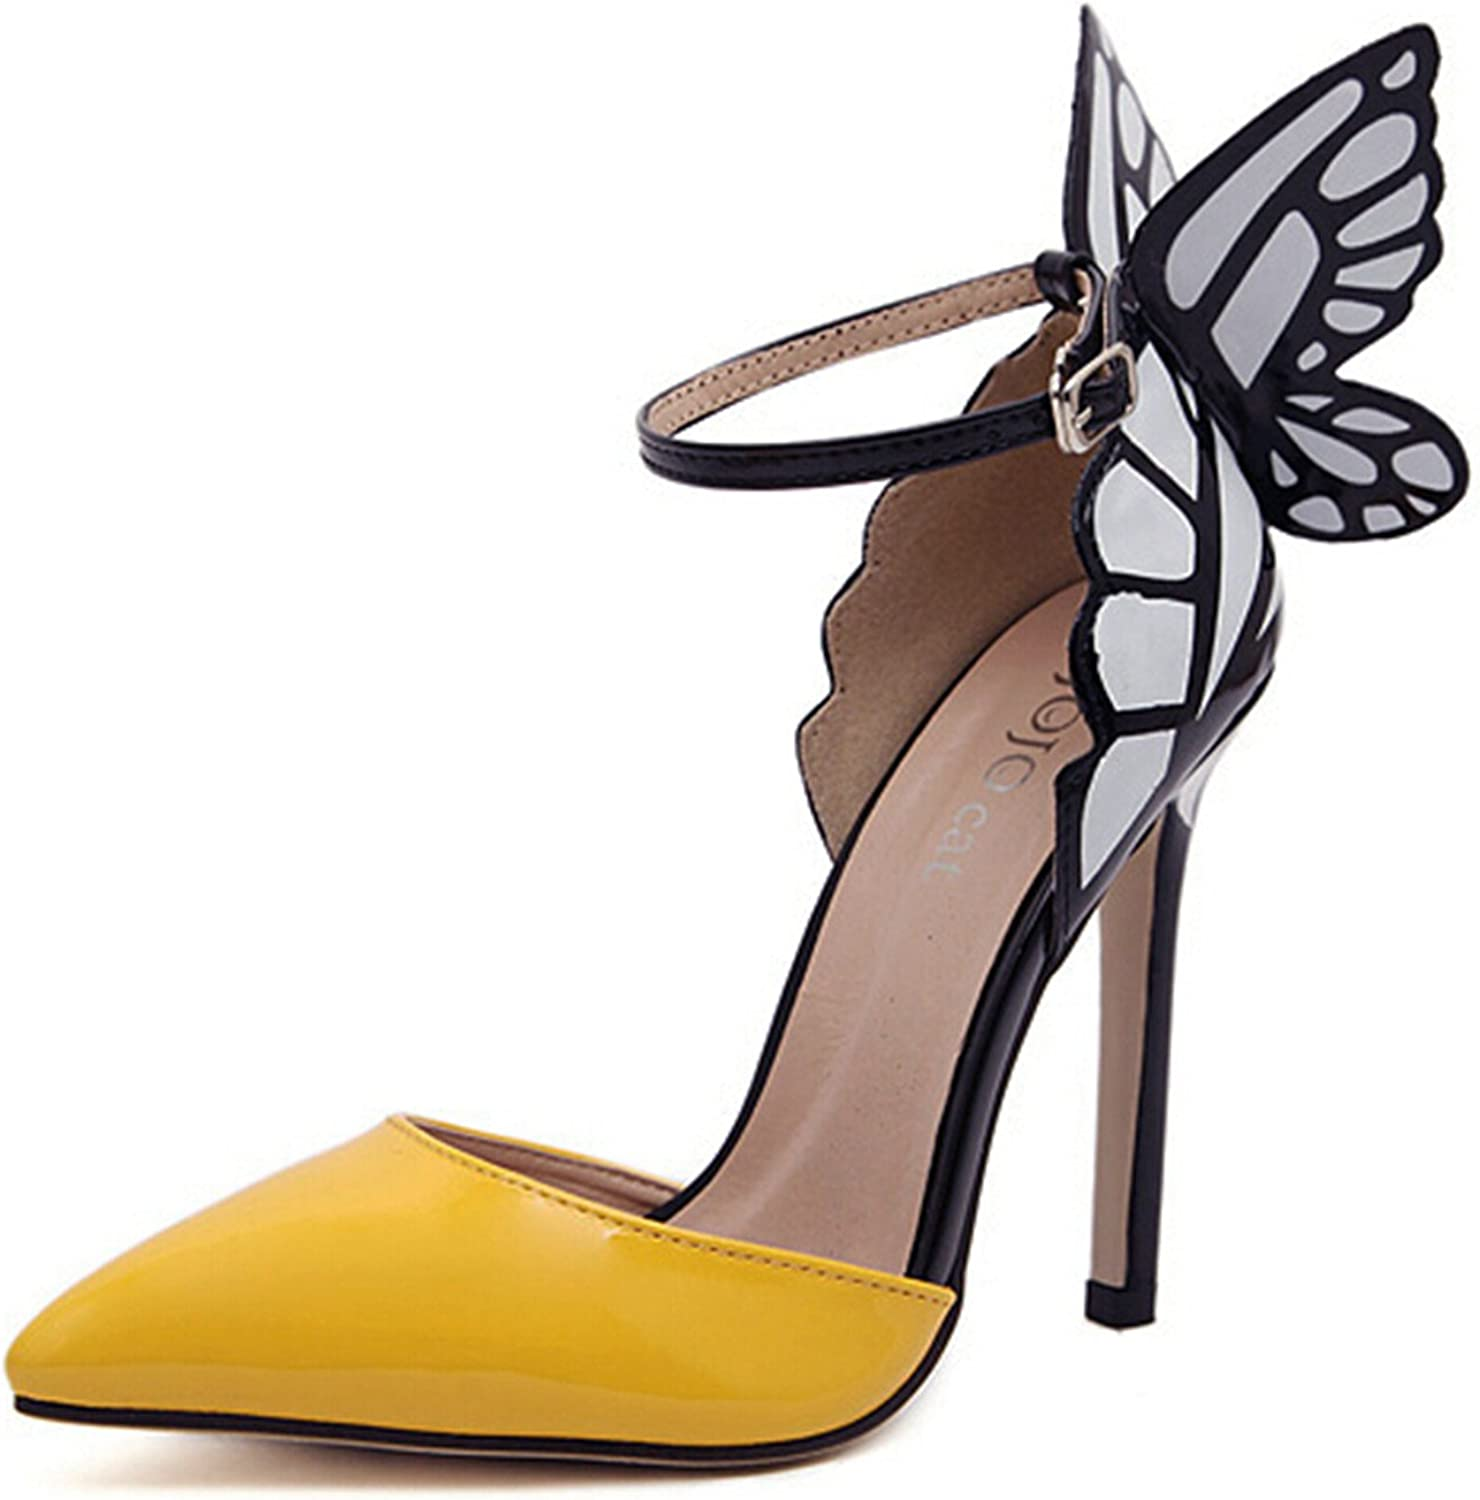 Robert Westbrook Women Wedding High Heels colorful Butterfly Heeled Sandals Pumps Bow Patry shoes Woman Bridal Pumps Yellow 5.5